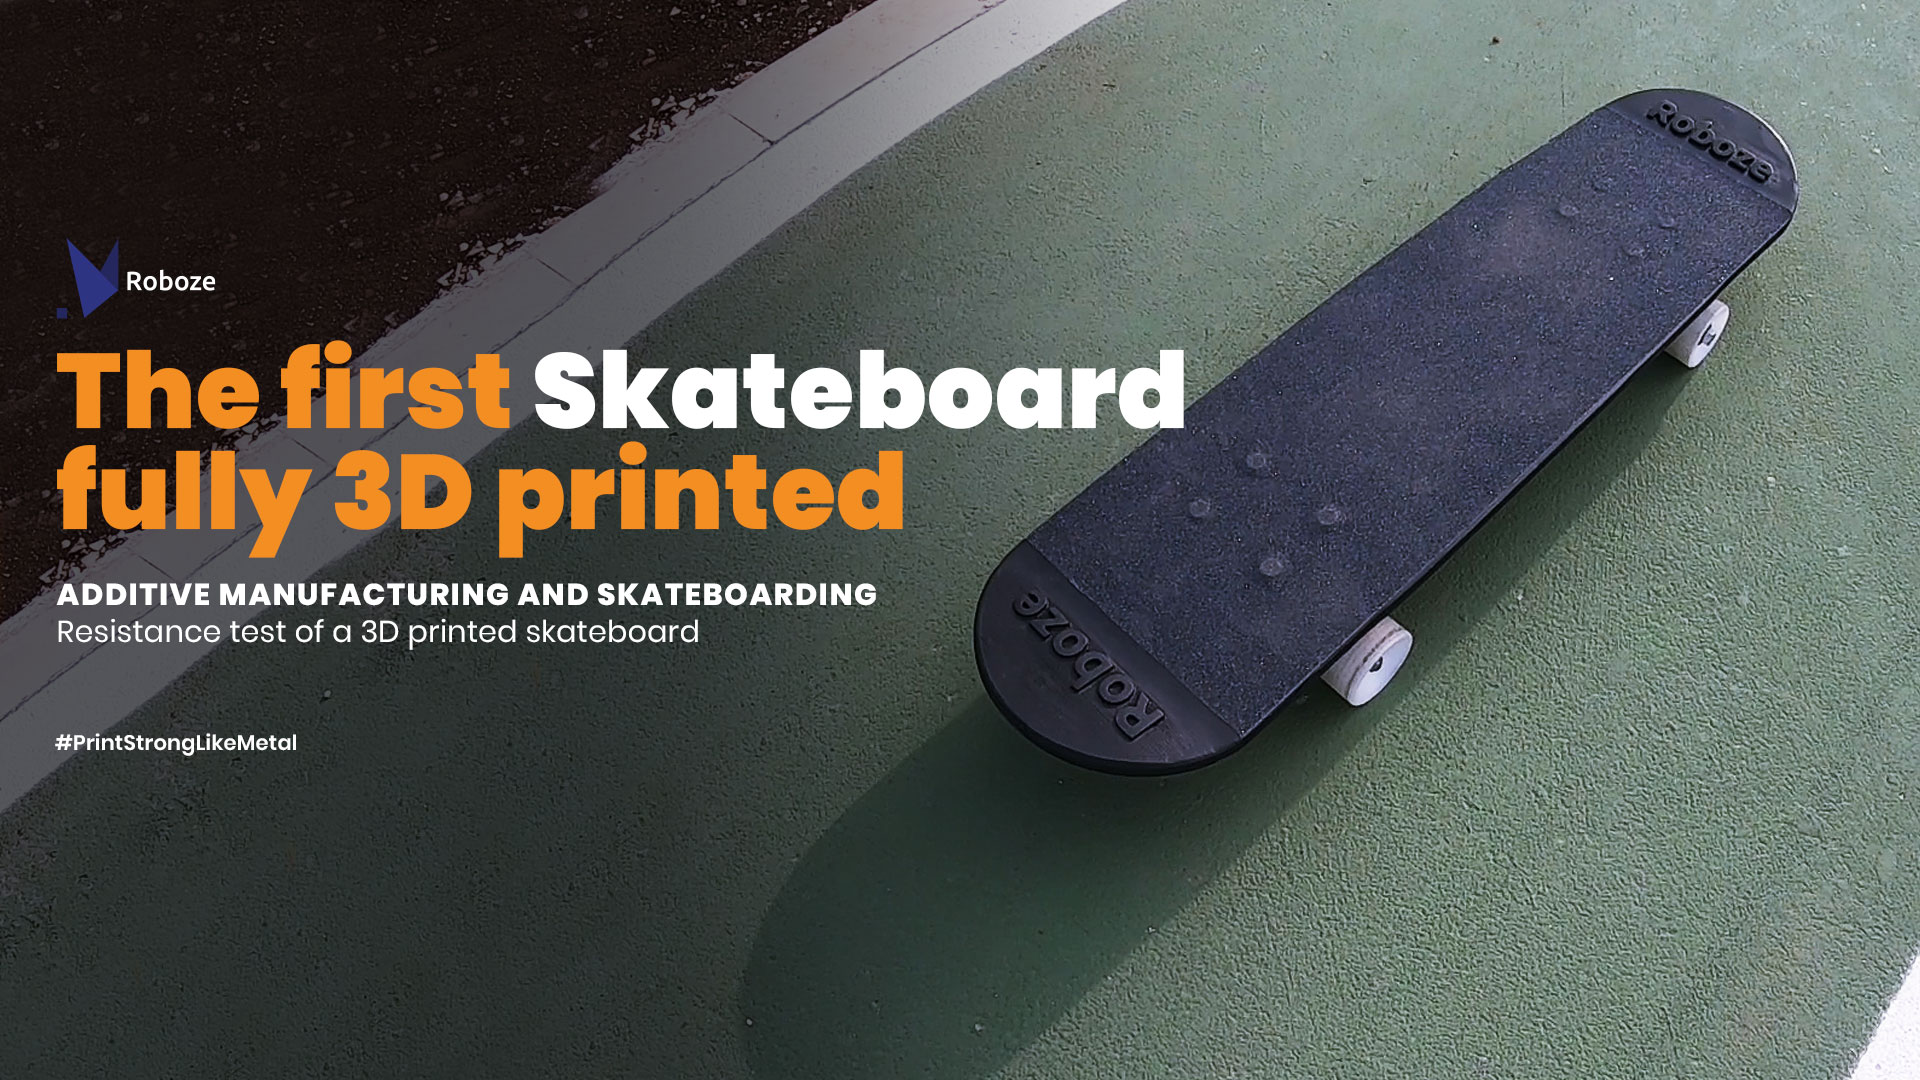 A fully 3D printed skateboard. Image via ROBOZE.